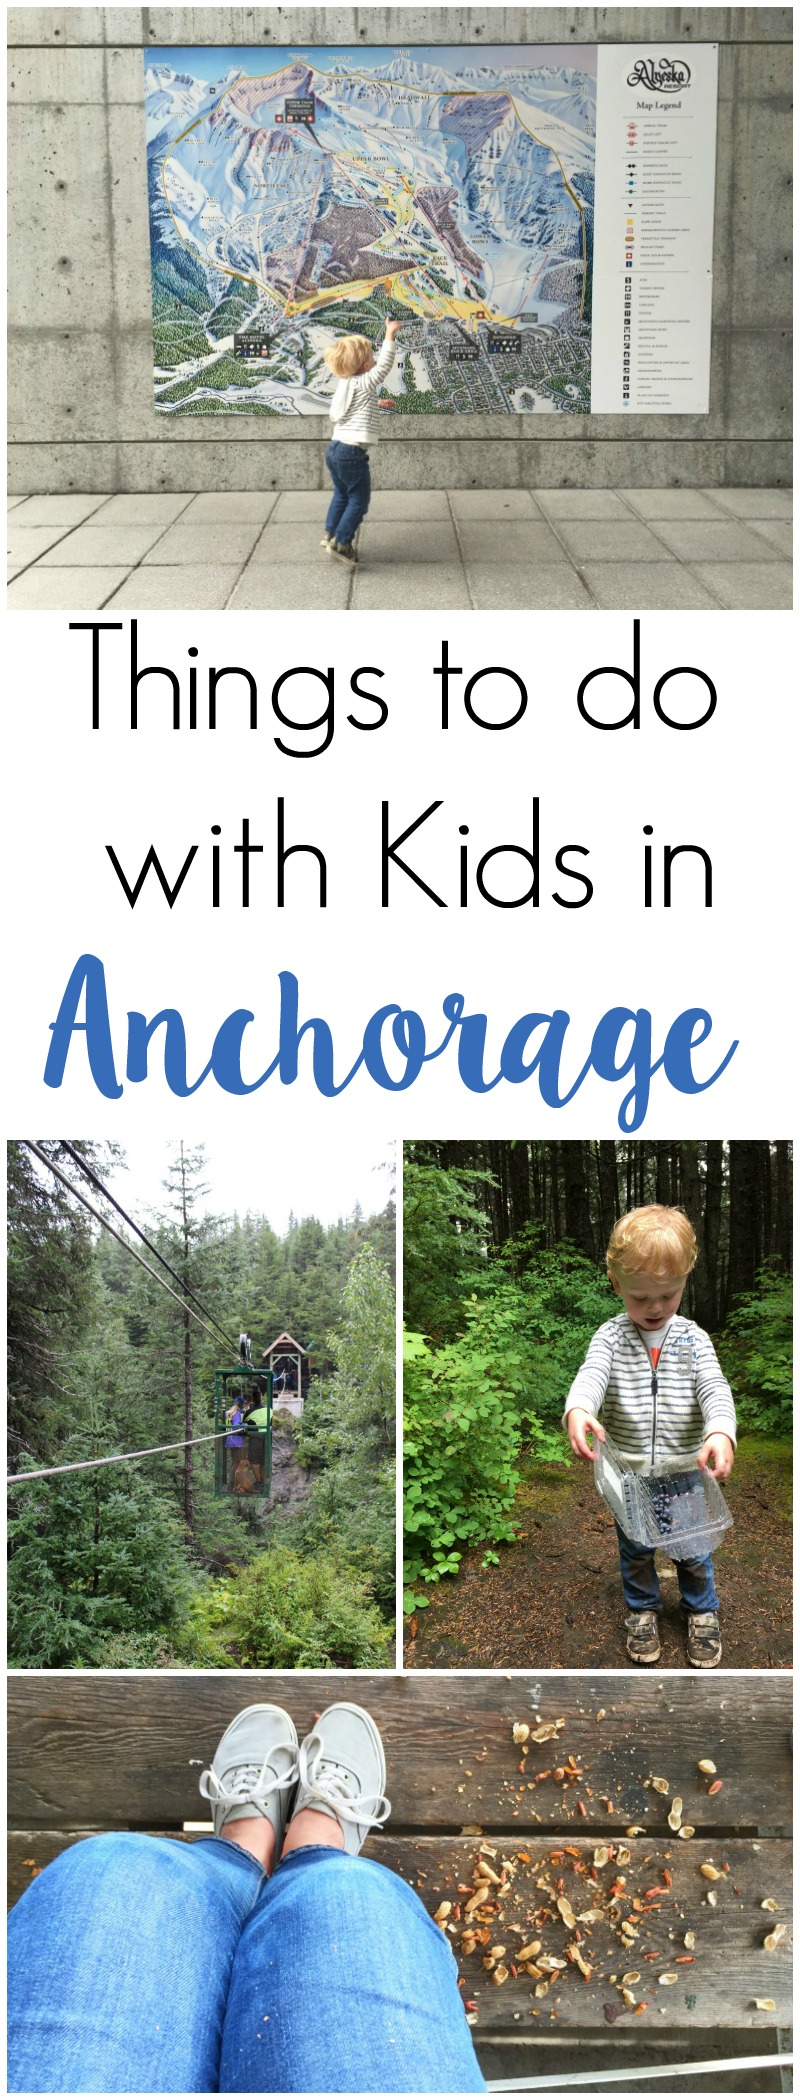 Things to do in Anchorage with kids. Anchorage is a BEAUTIFUL city! This Alaskan gem is an incredible once-in-a-lifetime family experience! Kids will witness beautiful glaciers, come face to face with Moose, and have their day filled with adventure!